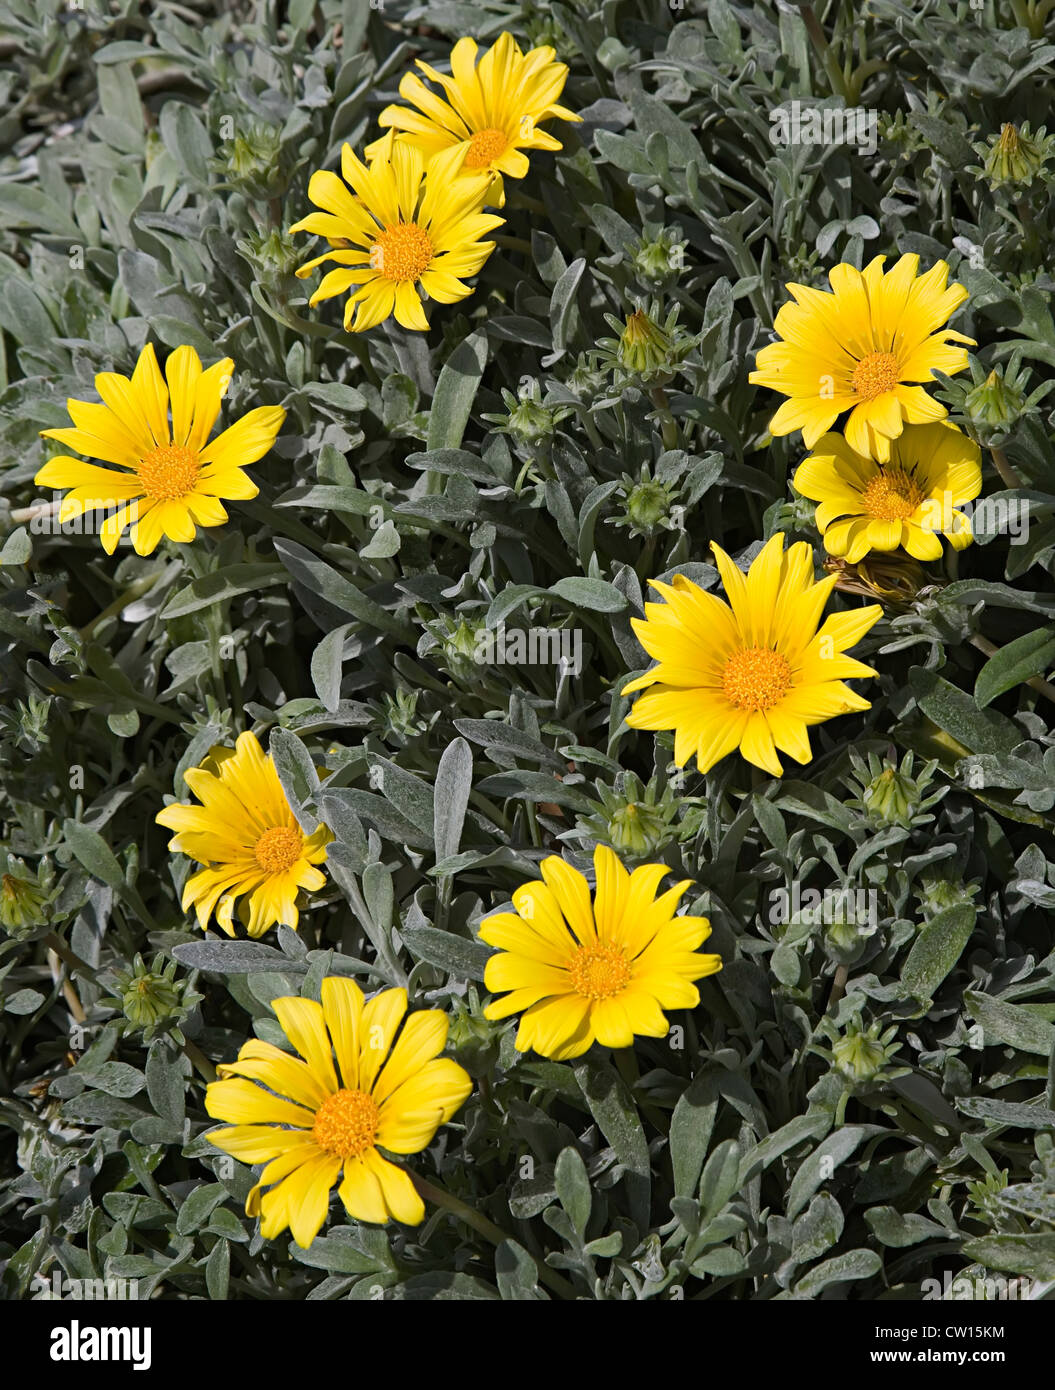 Yellow flower in the Asteraceae family on the coast of Malaga, Spain - Stock Image